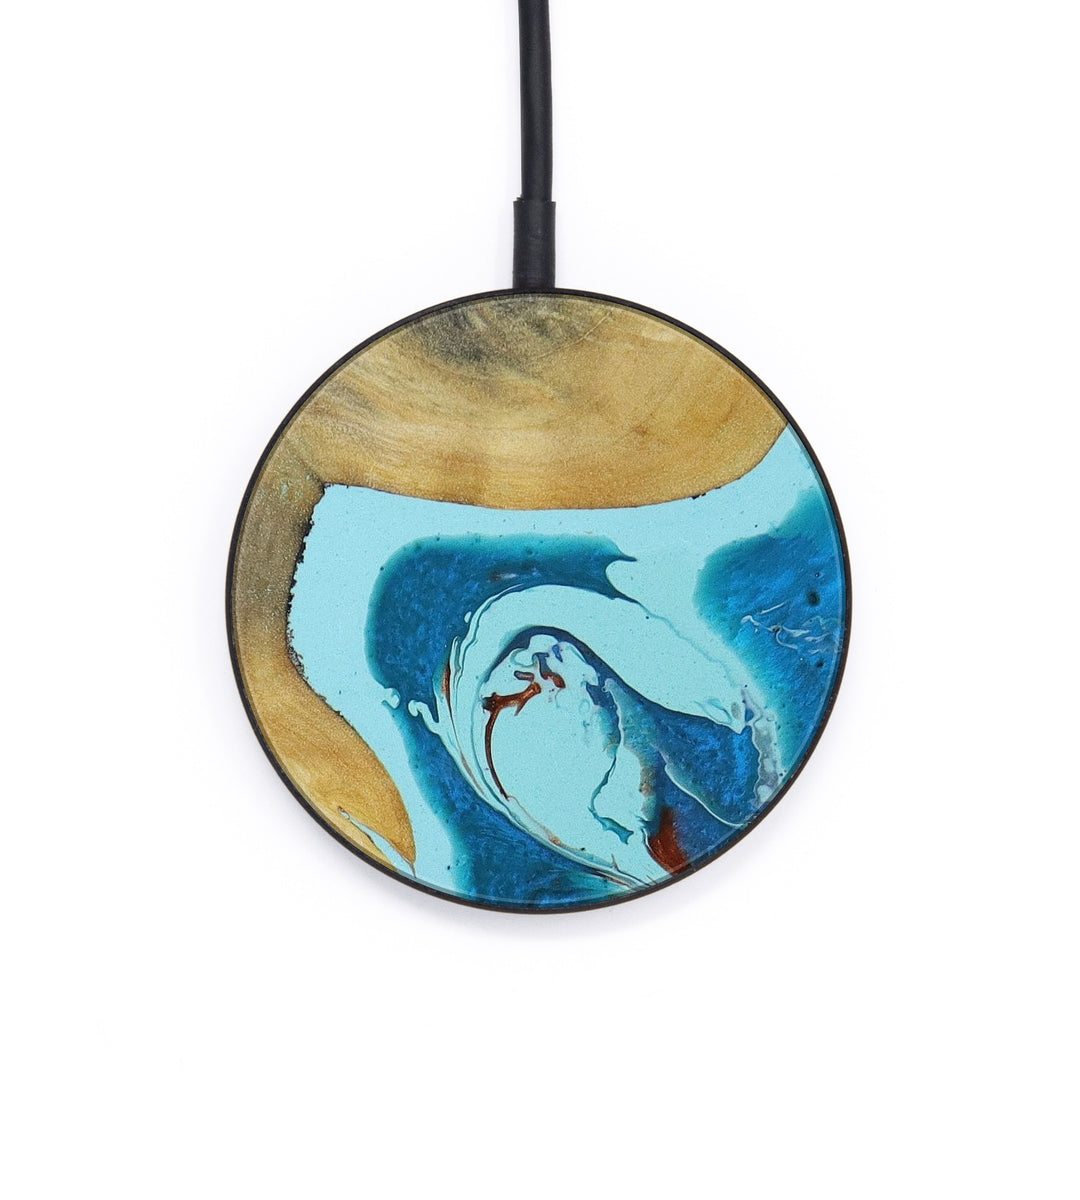 Circle Wood+Resin Wireless Charger - Elset (Teal & Gold, 406087)